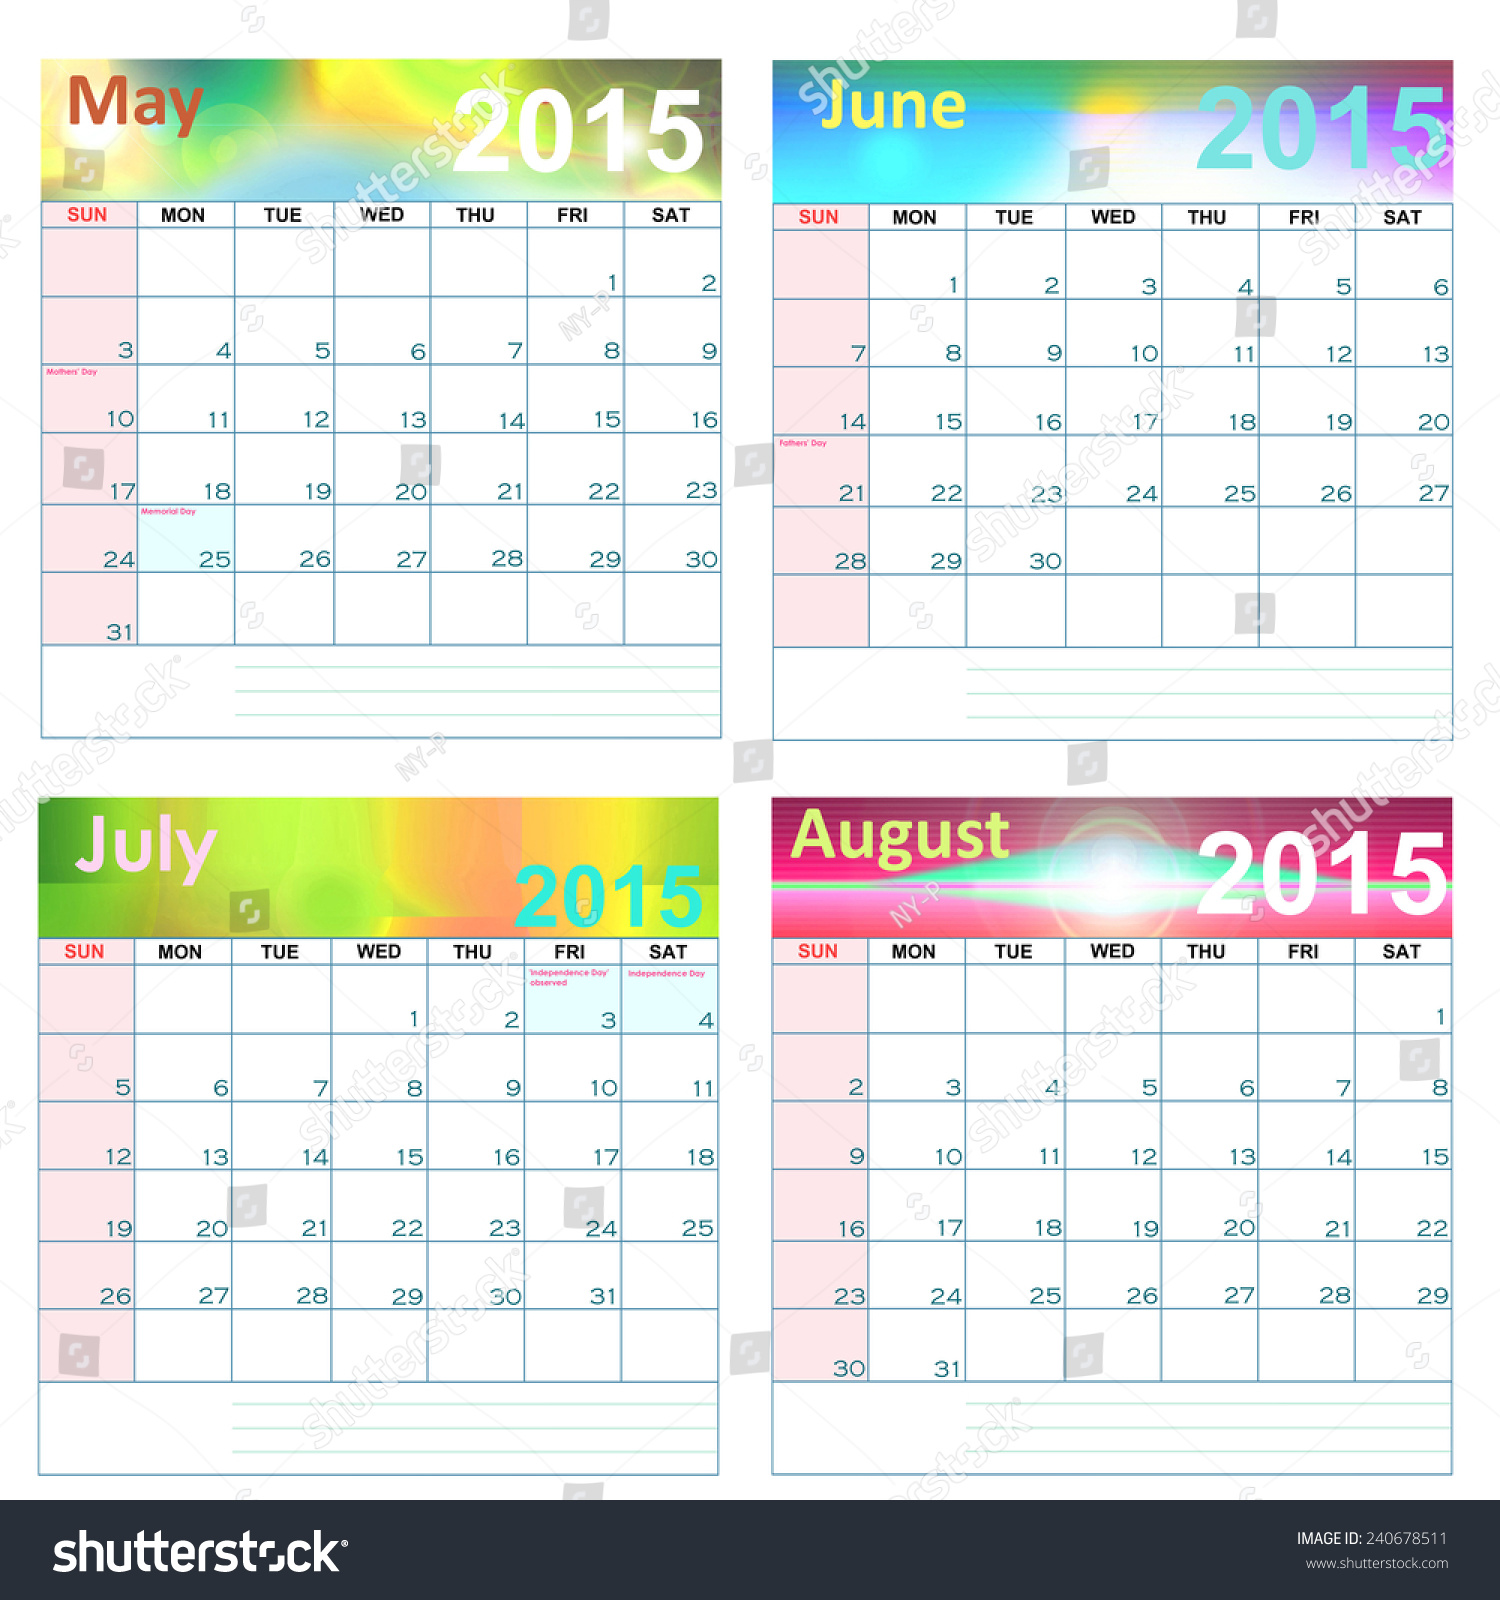 Calendar Monthly Observances : Calendar holidays and observances united states